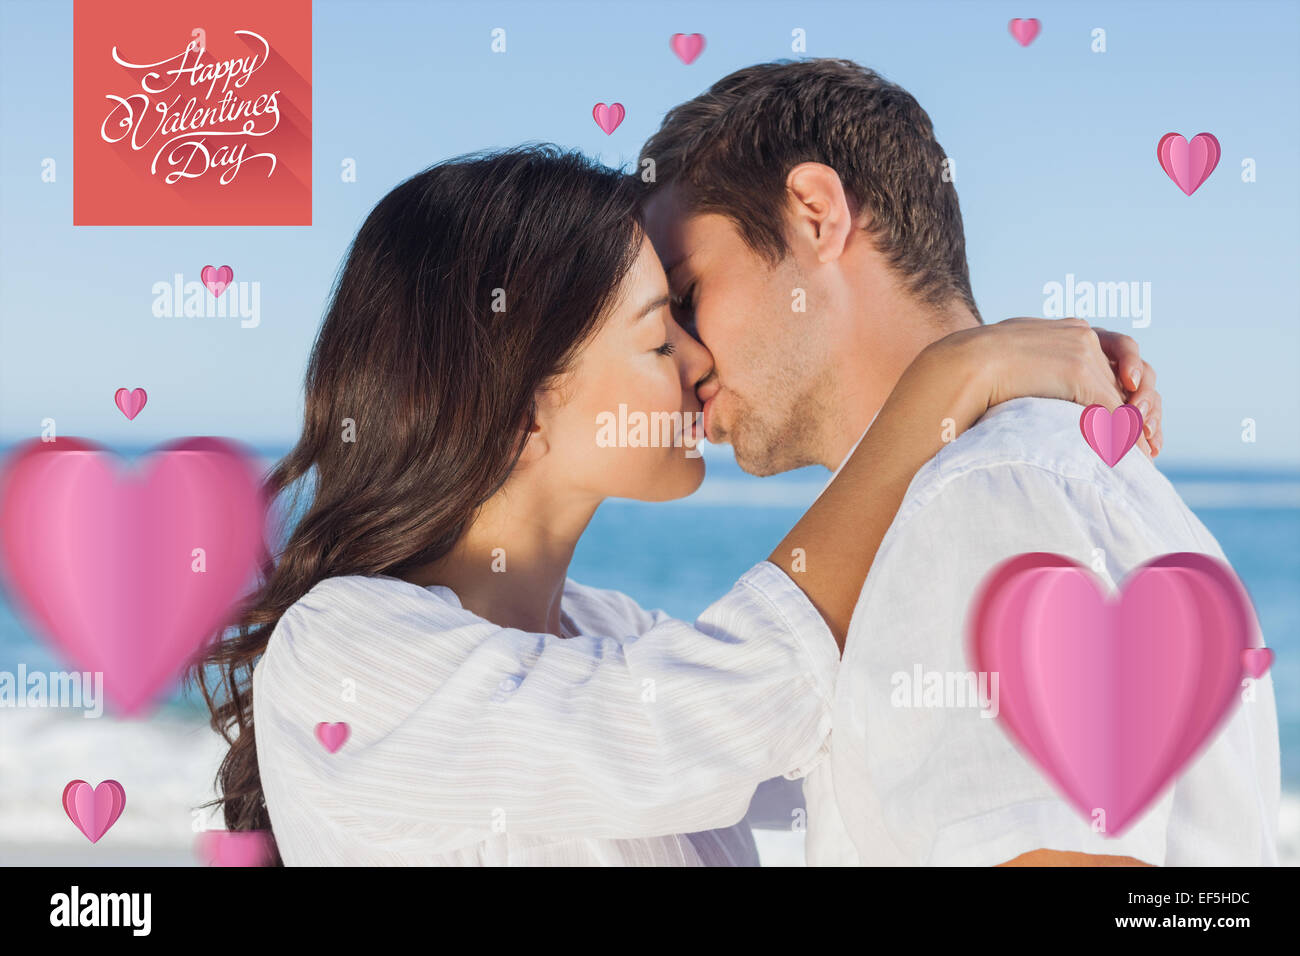 Composite image of couple embracing and kissing each other on the beach Stock Photo